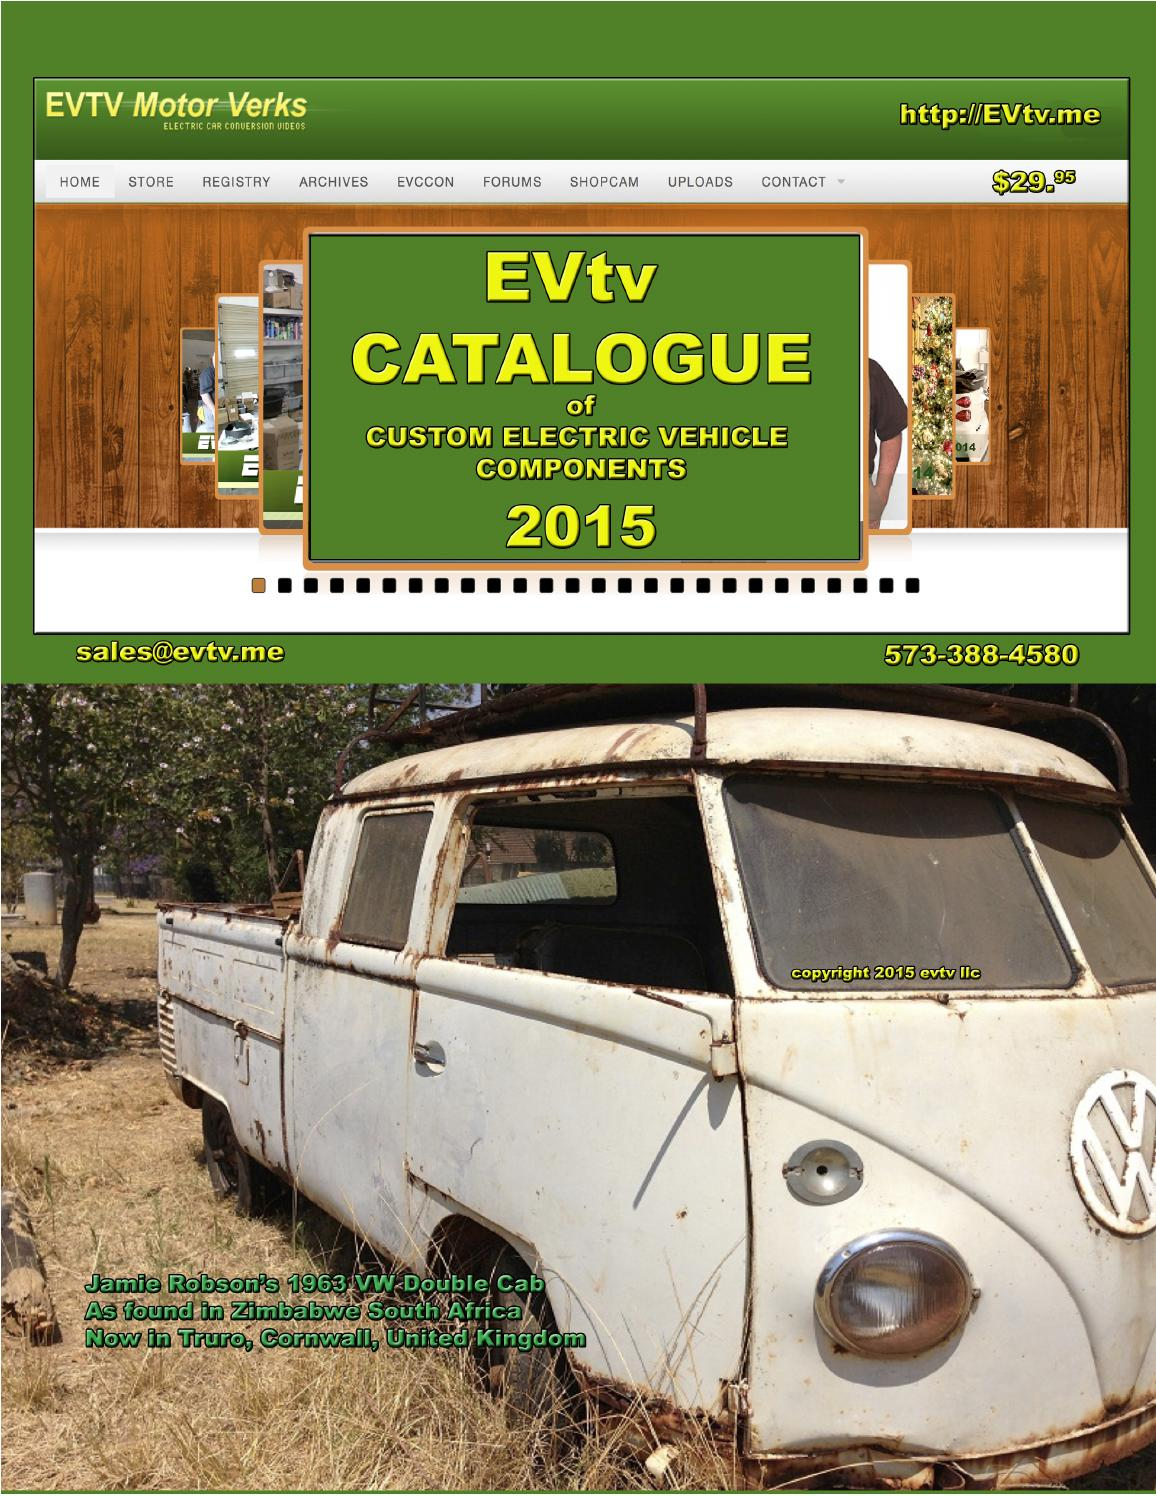 Evtvcatalog2015 By Jack Rickard Issuu And Protection Circuit Design Of 200 300a Igbt Dave Ross Blog